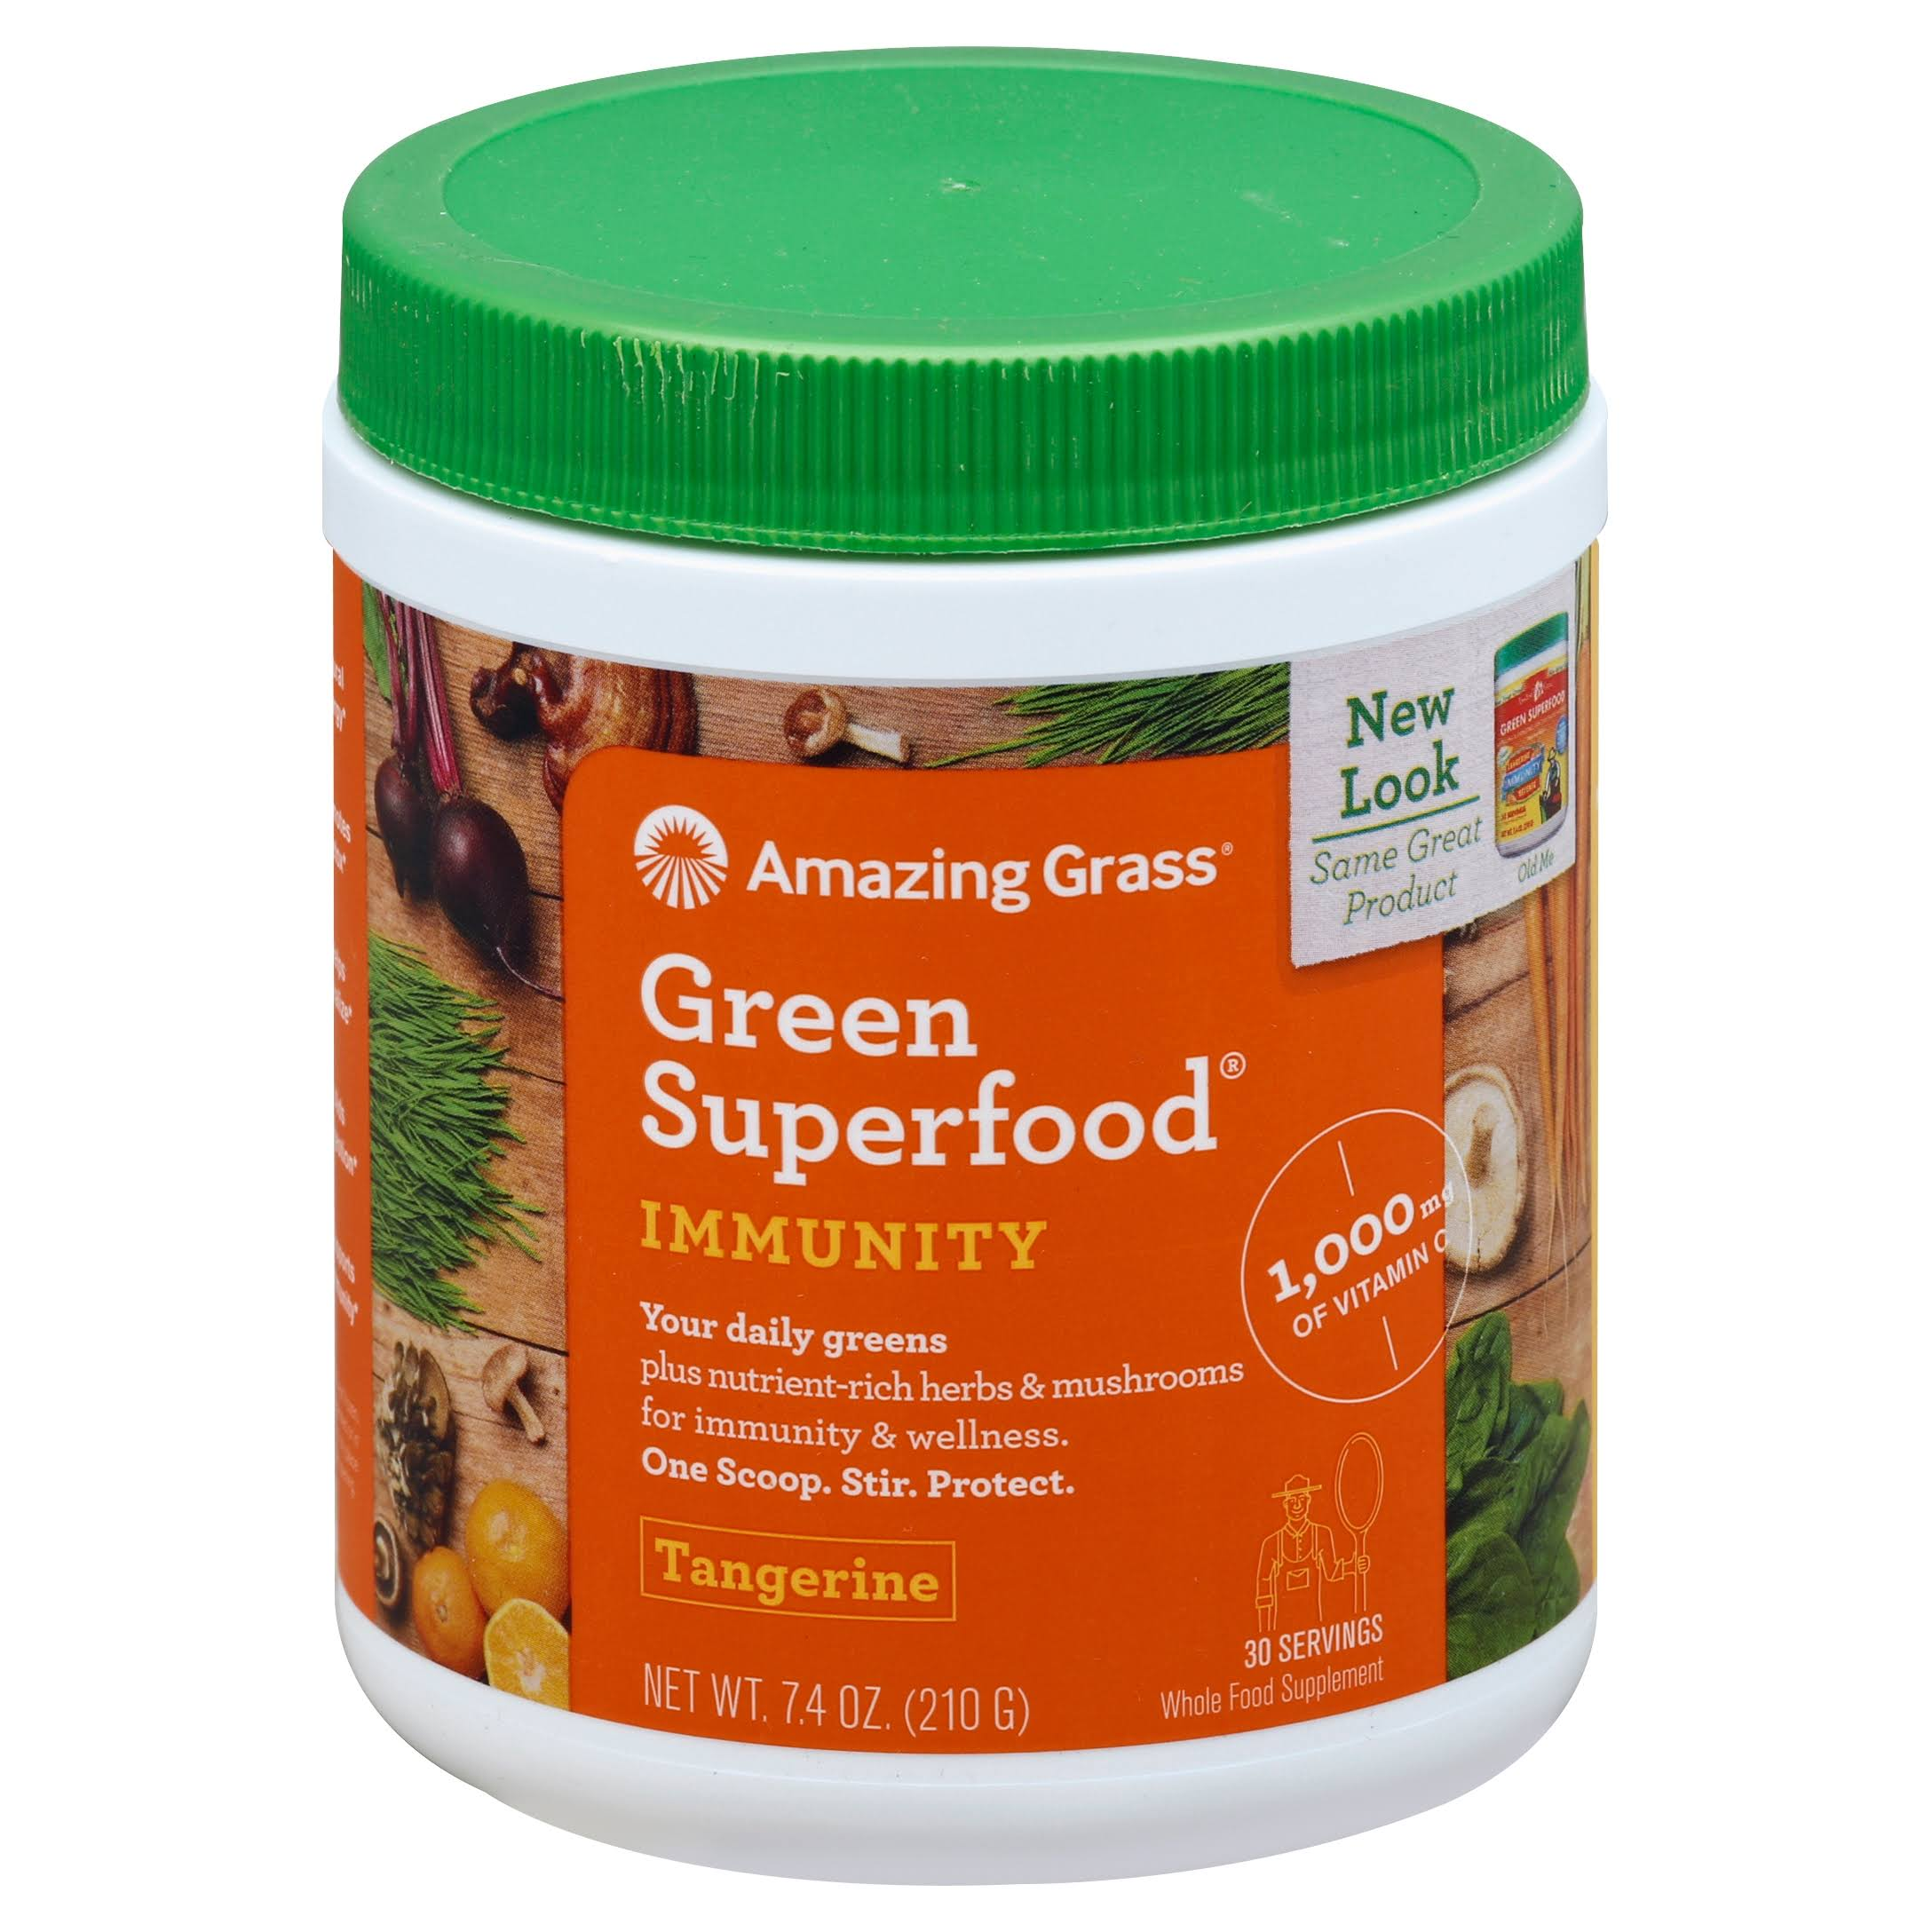 Amazing Grass Green Superfood Immunity Defense Supplement - Tangerine, 30 Servings, 7.4oz